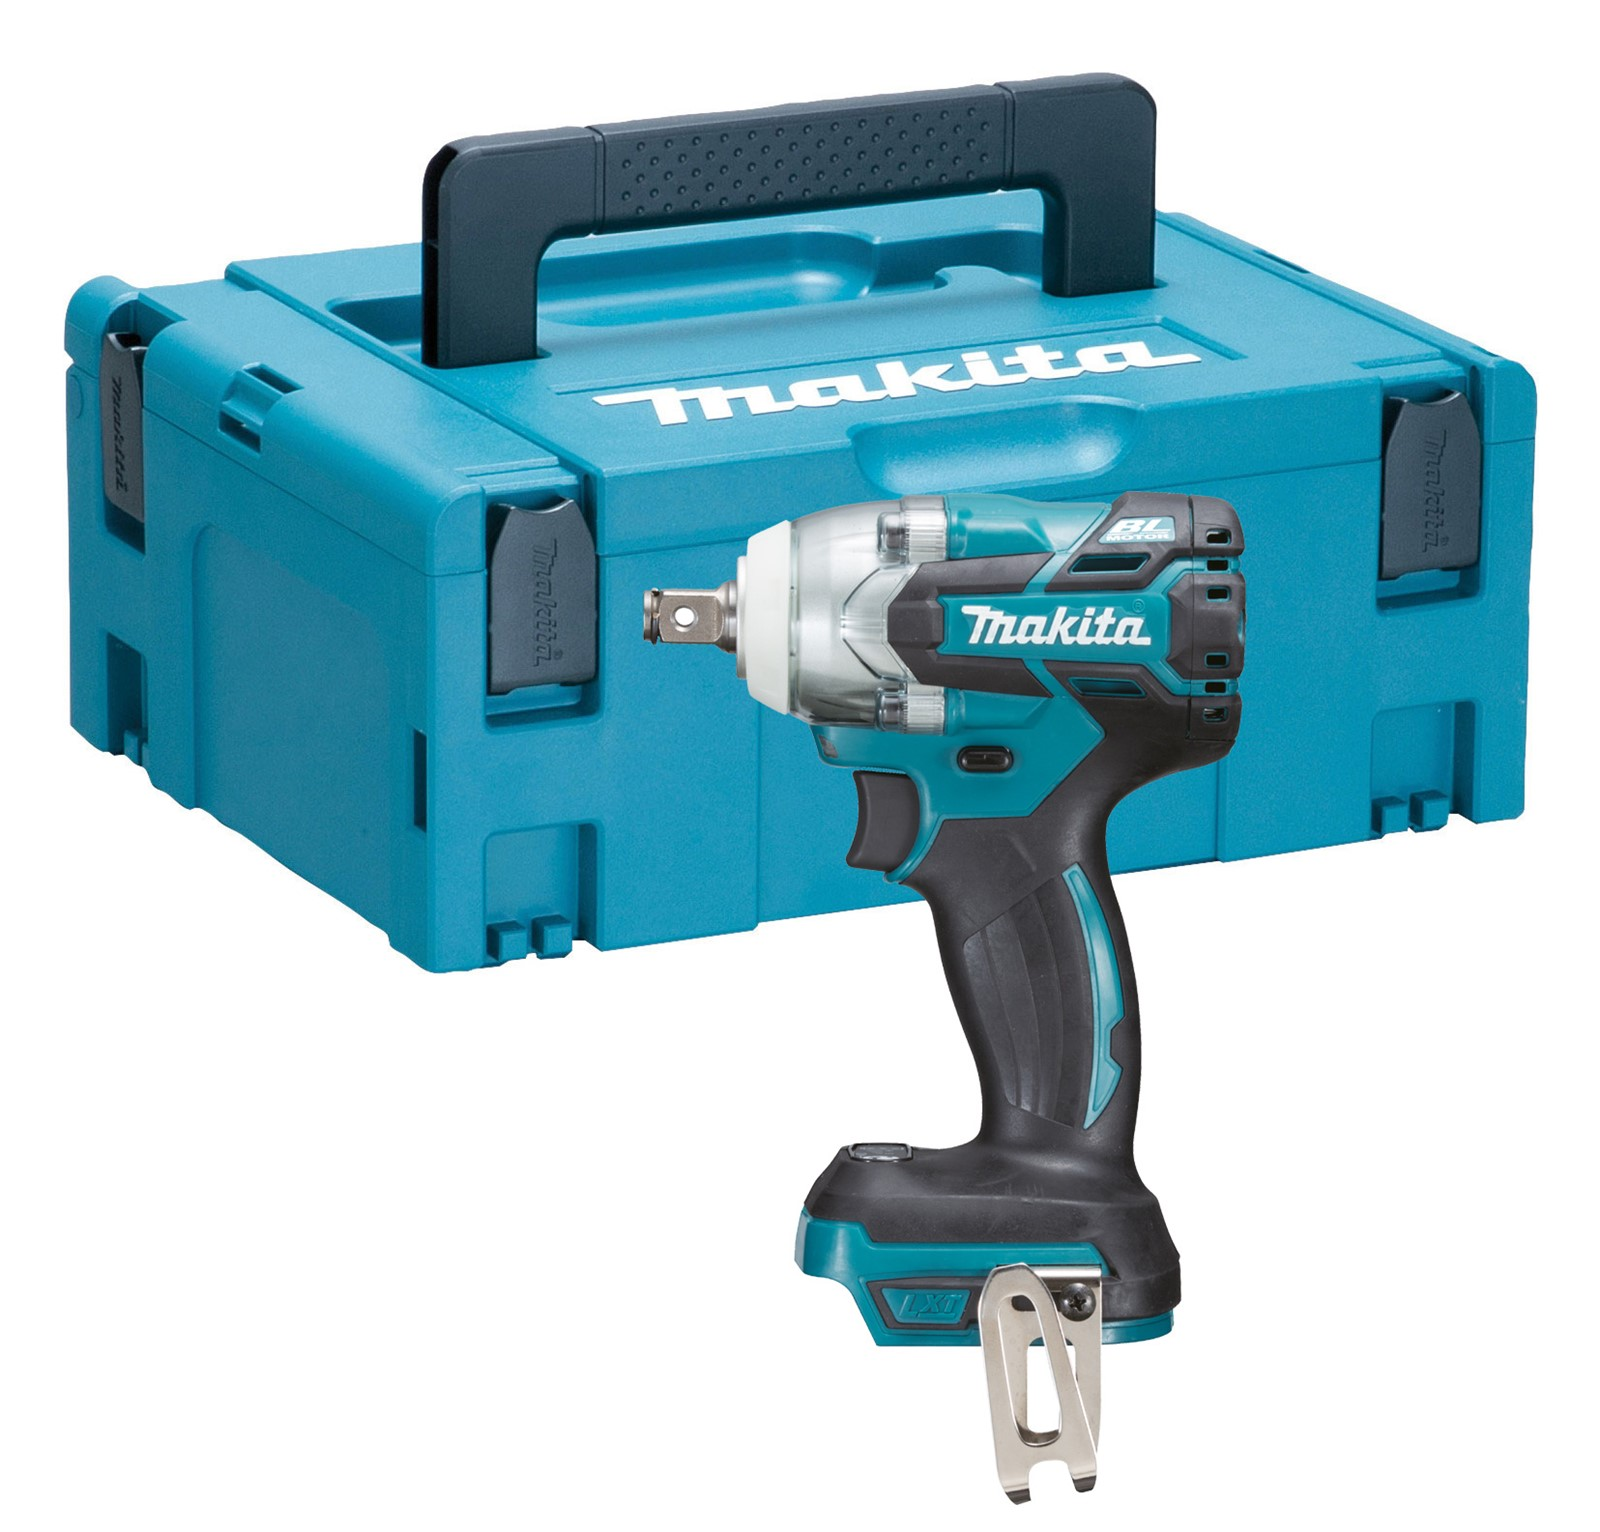 makita dtw285z 18v lxt brushless impact wrench 1 2 drive. Black Bedroom Furniture Sets. Home Design Ideas